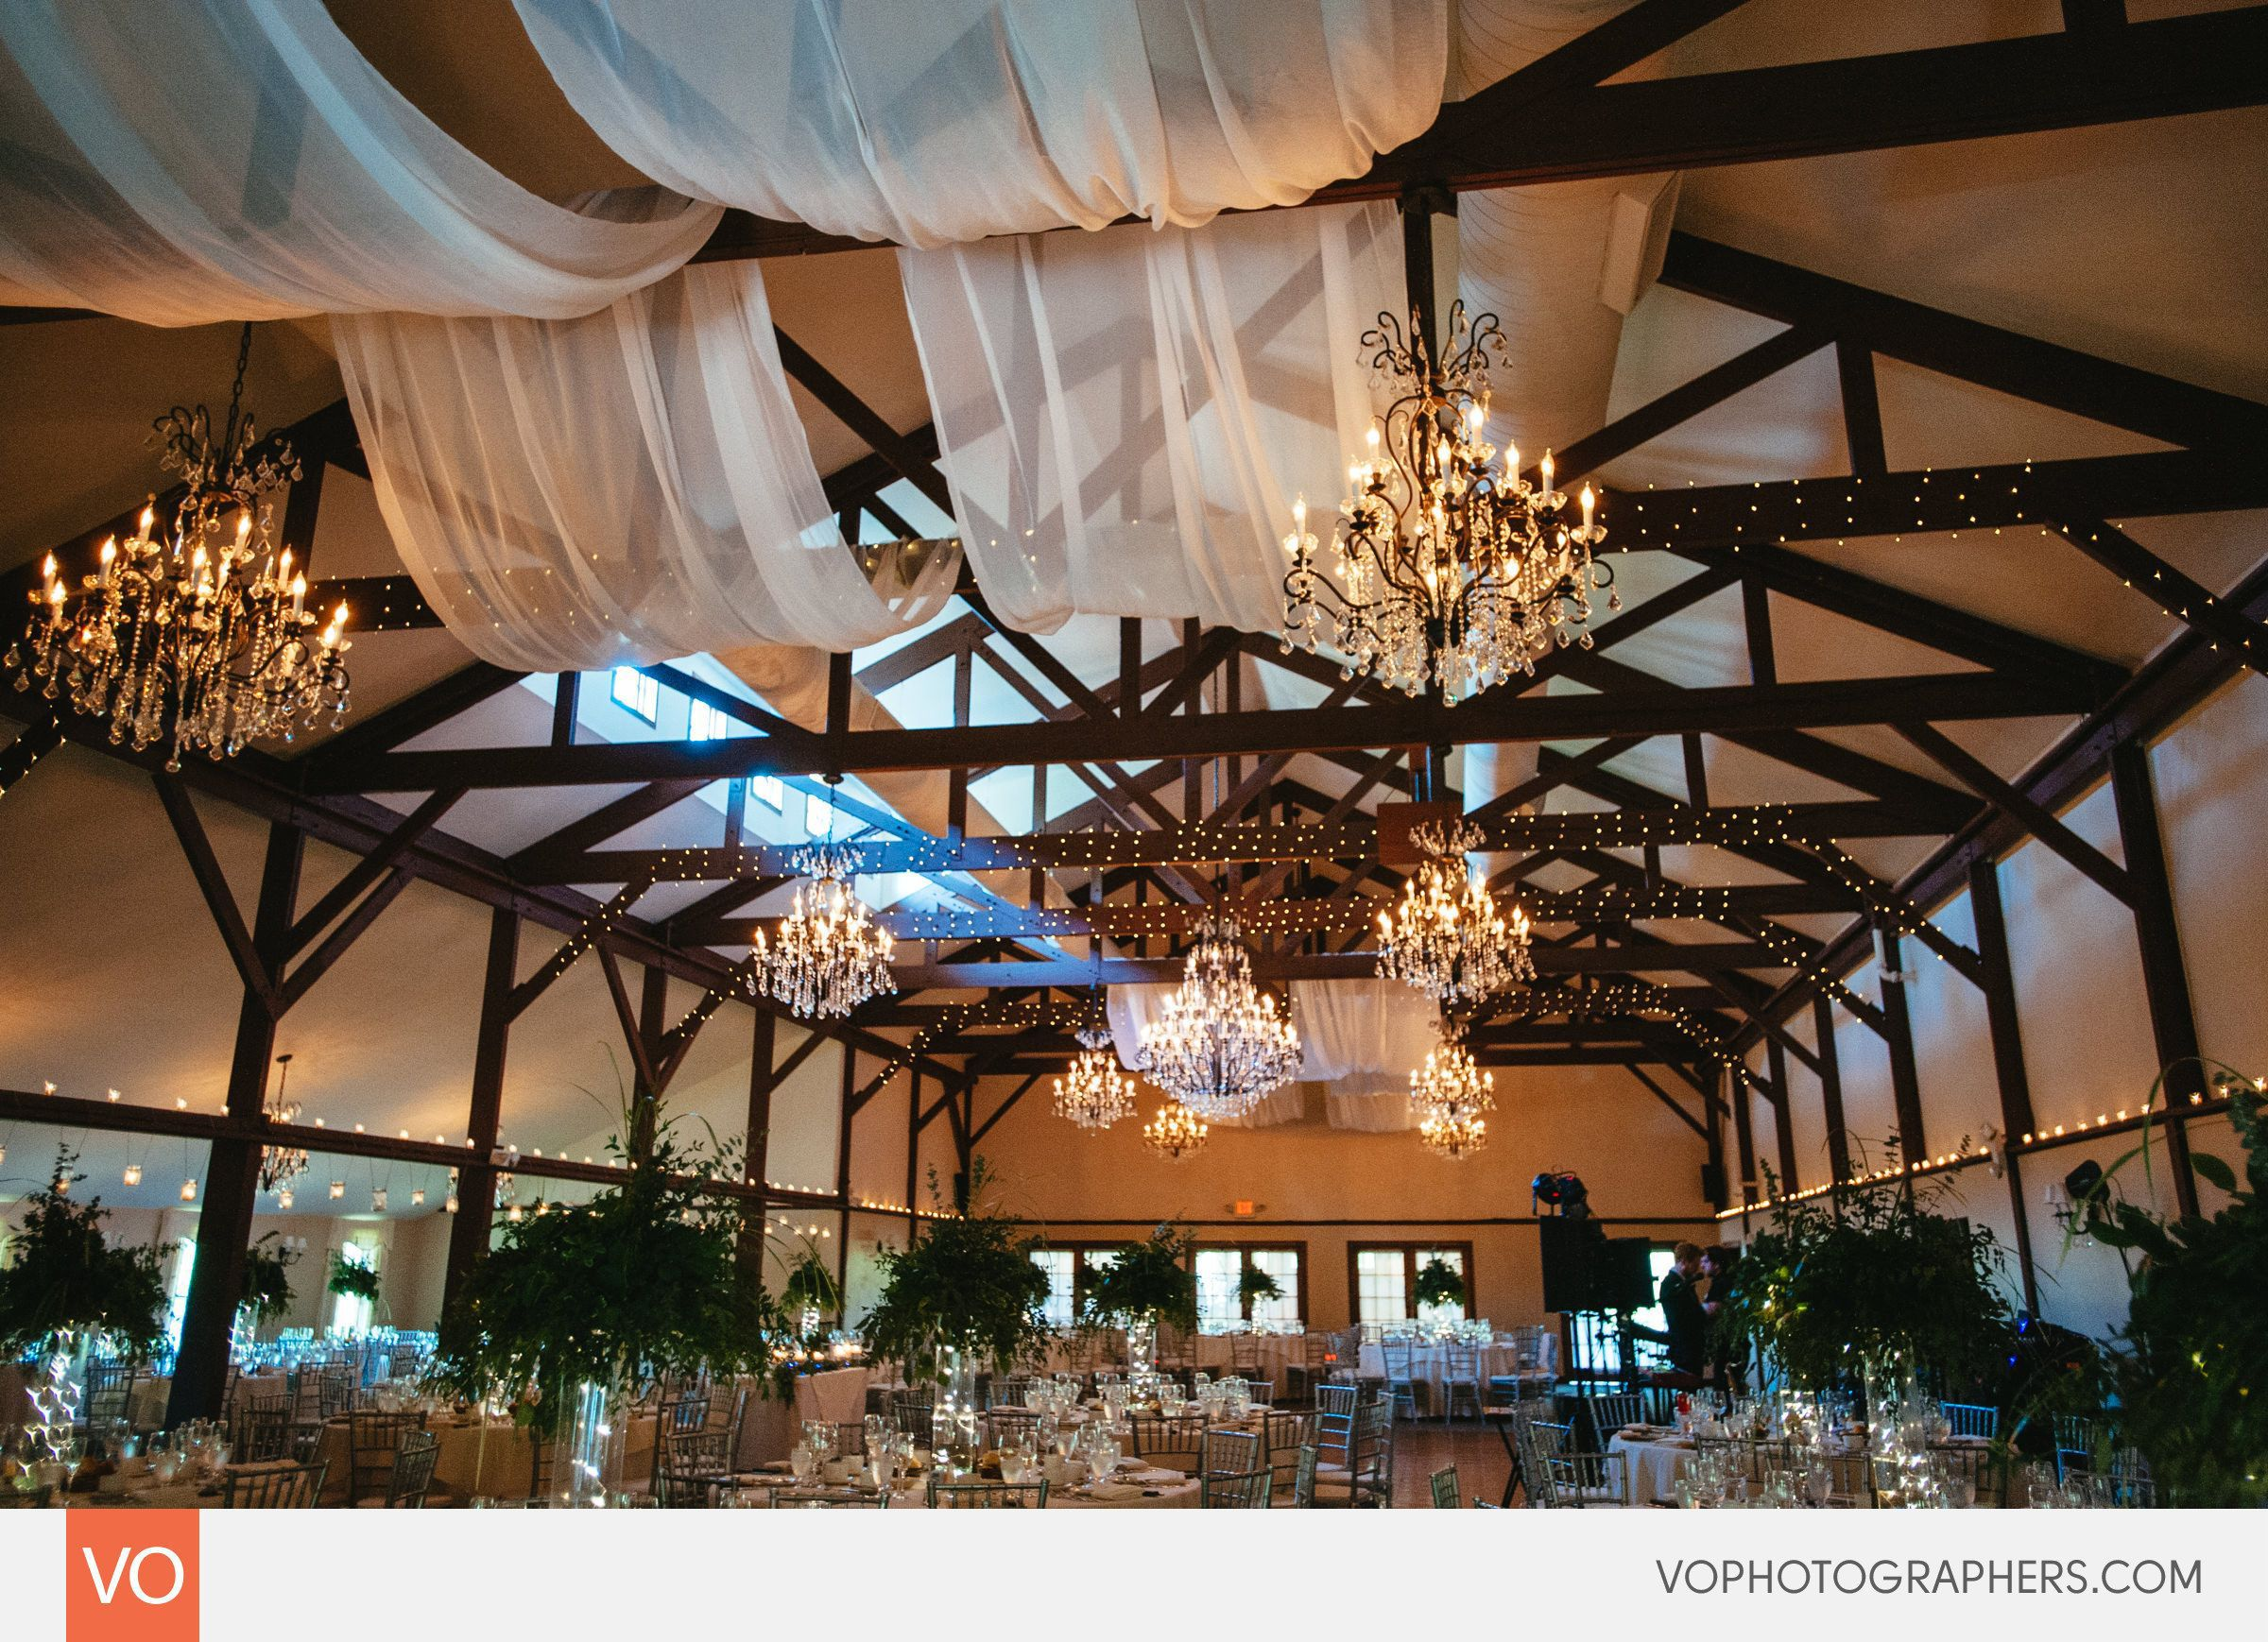 My favorite winter wedding venues near hartford ct with